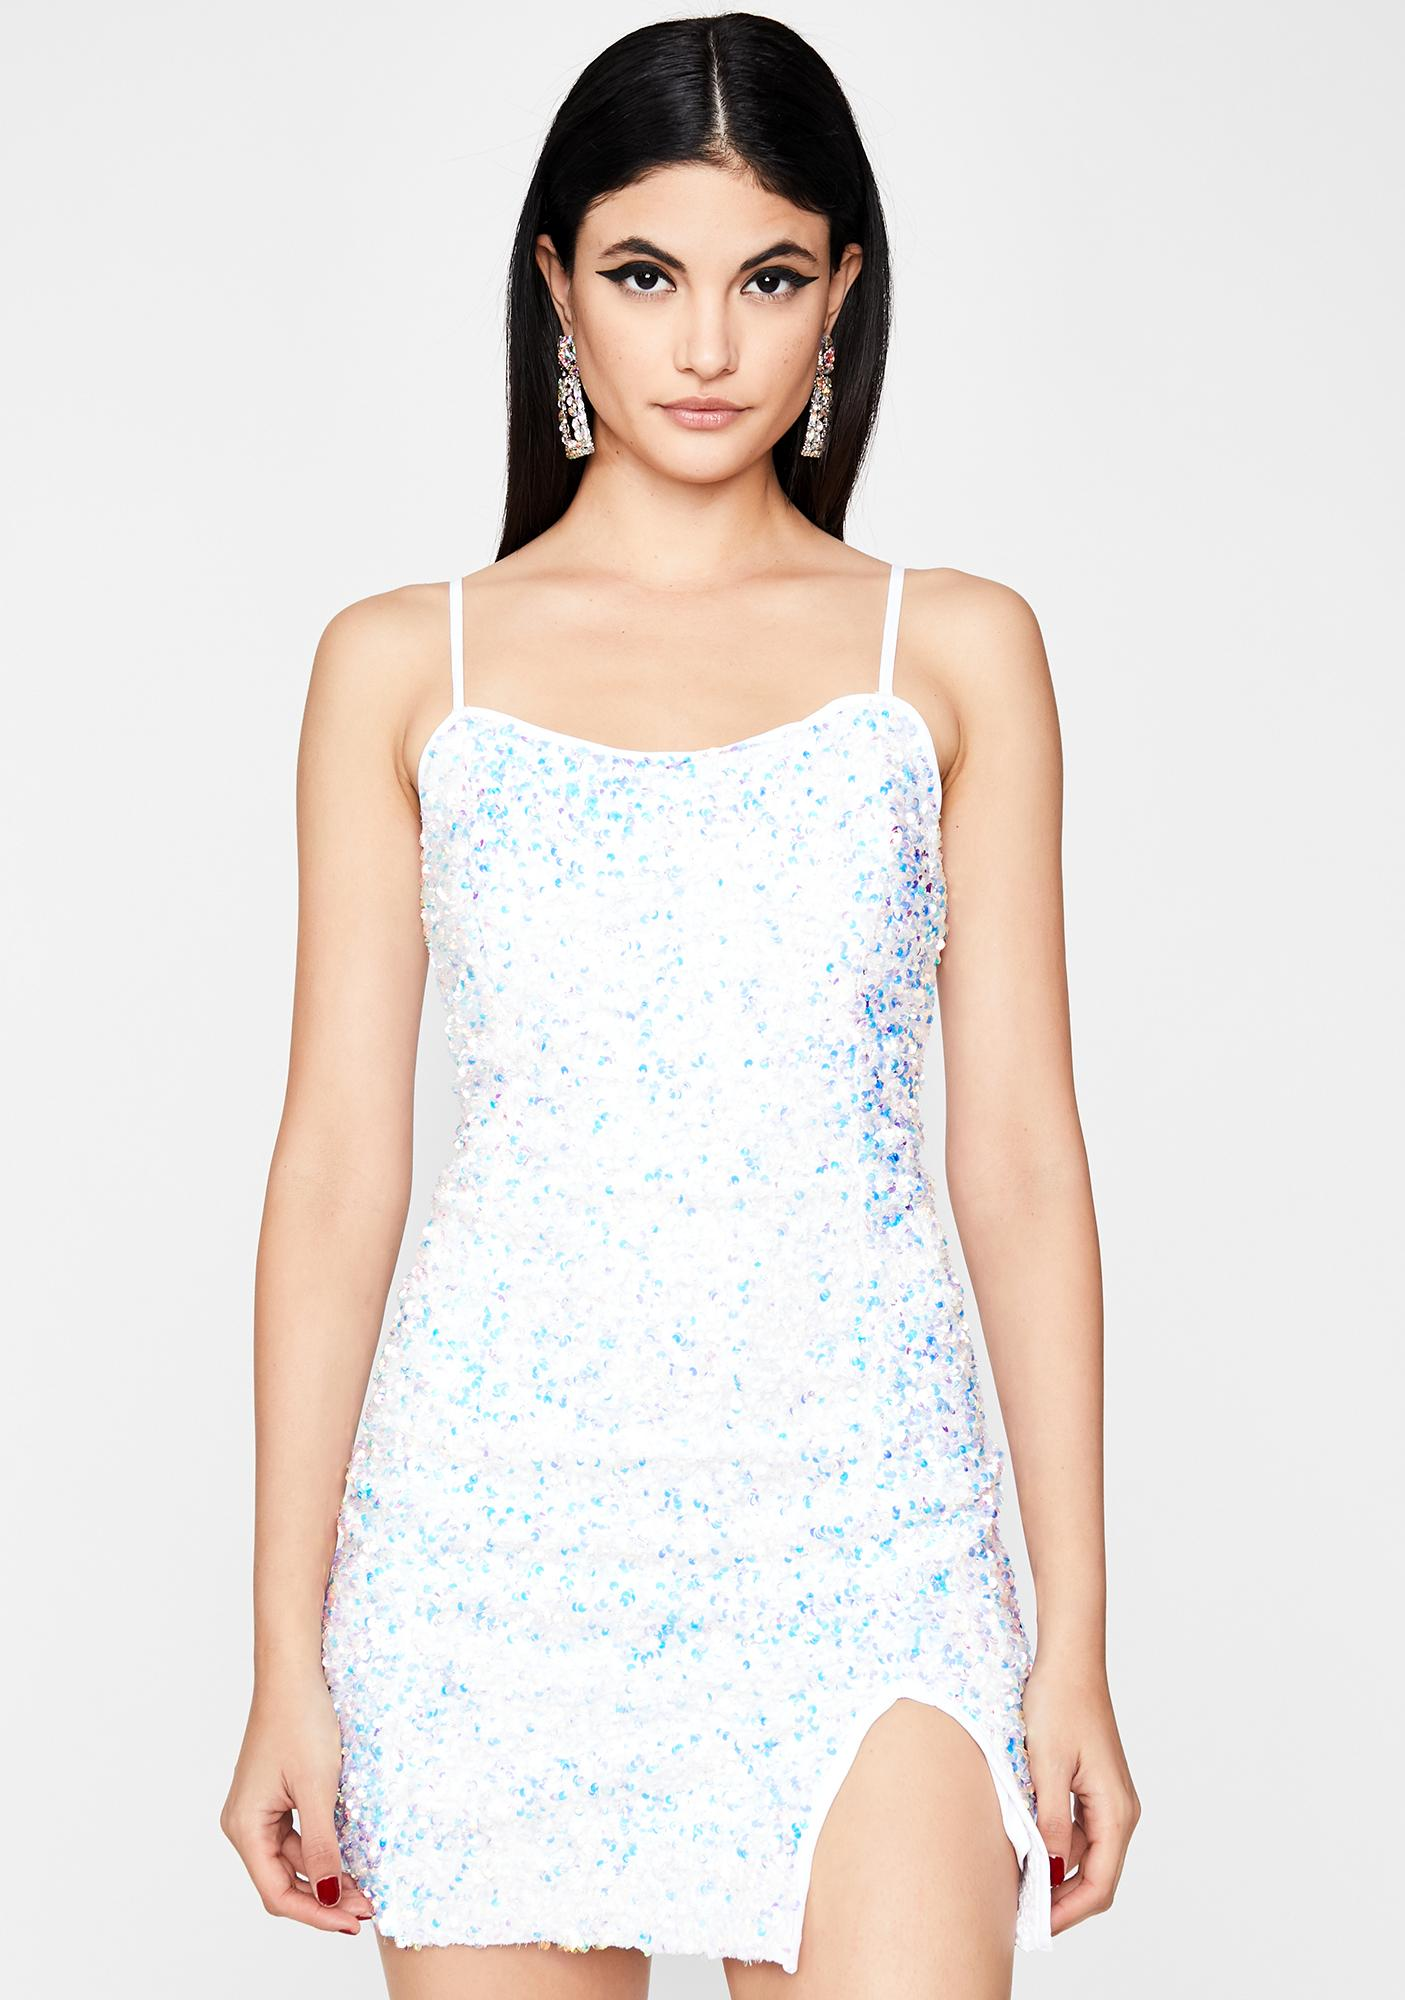 Psychedelic Snowflake Mini Dress